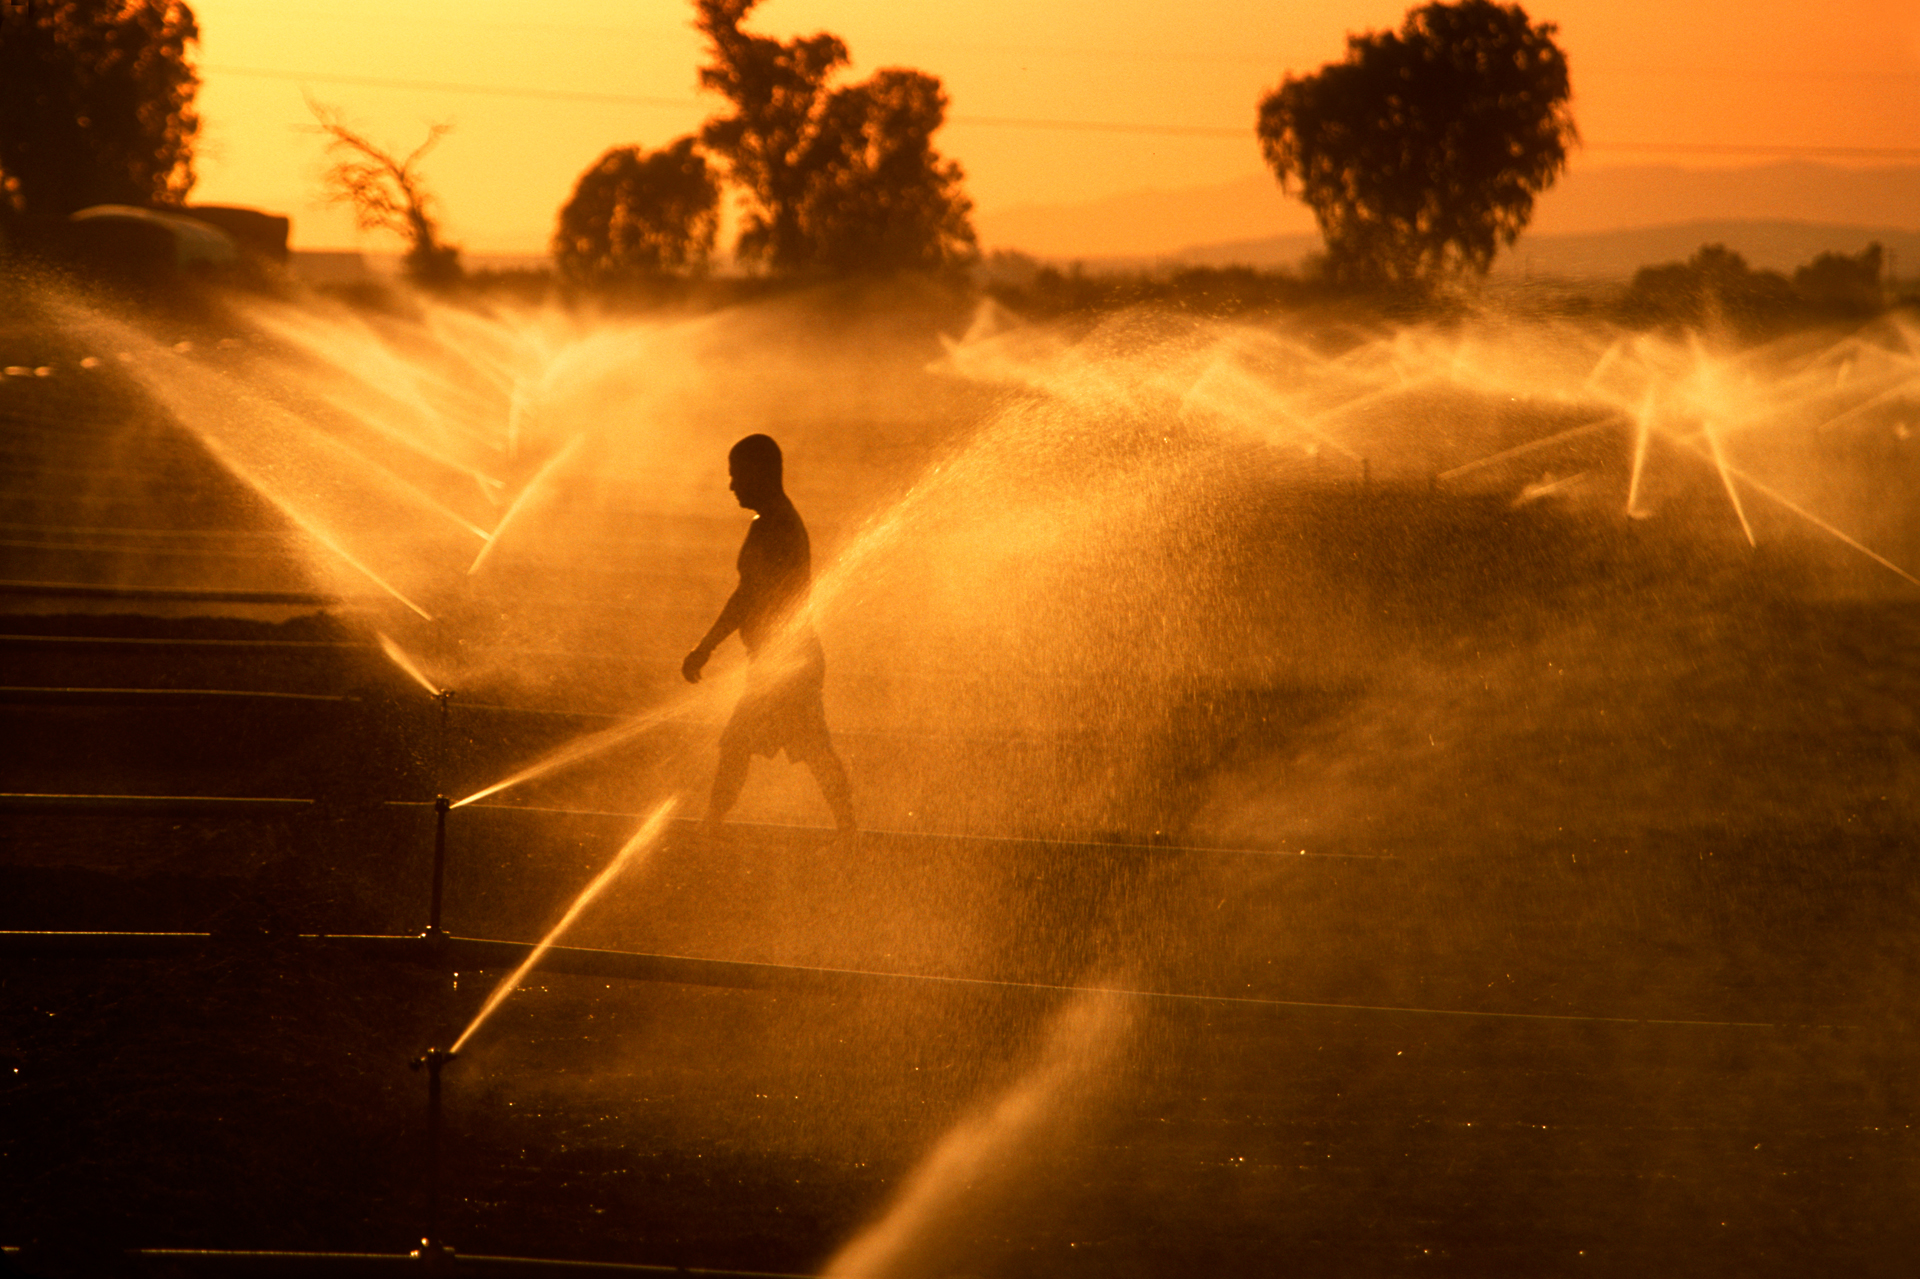 Maintenance of irrigation equipment is a daily priority. A Hispanic field worker fixes the sprinklers in an alfalfa field as the day ends.  Imperial